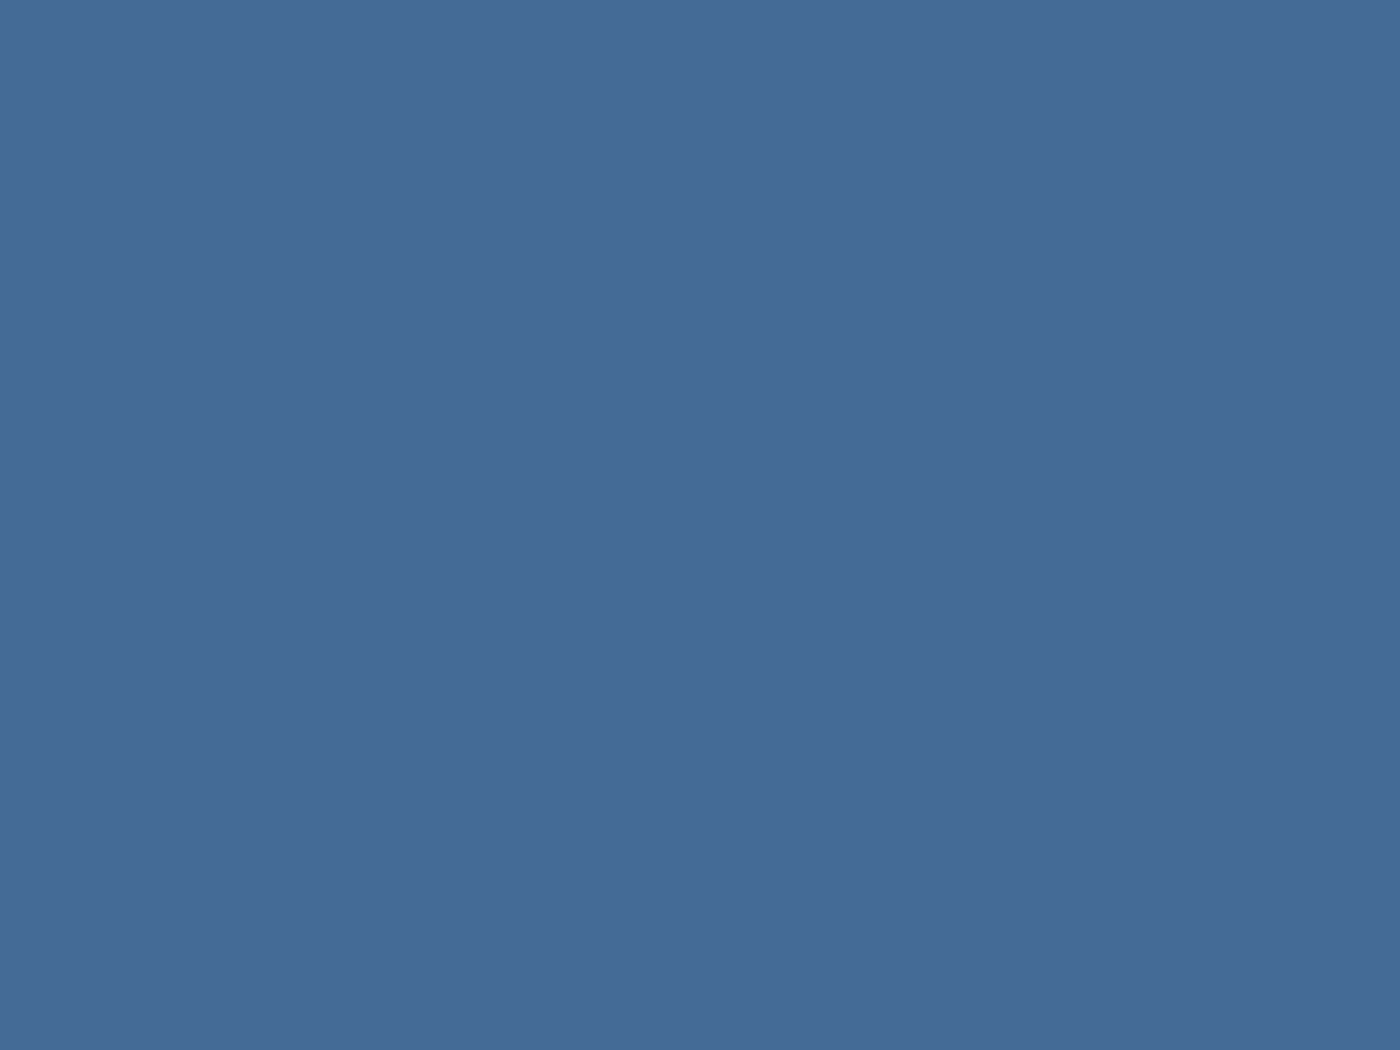 1400x1050 Queen Blue Solid Color Background